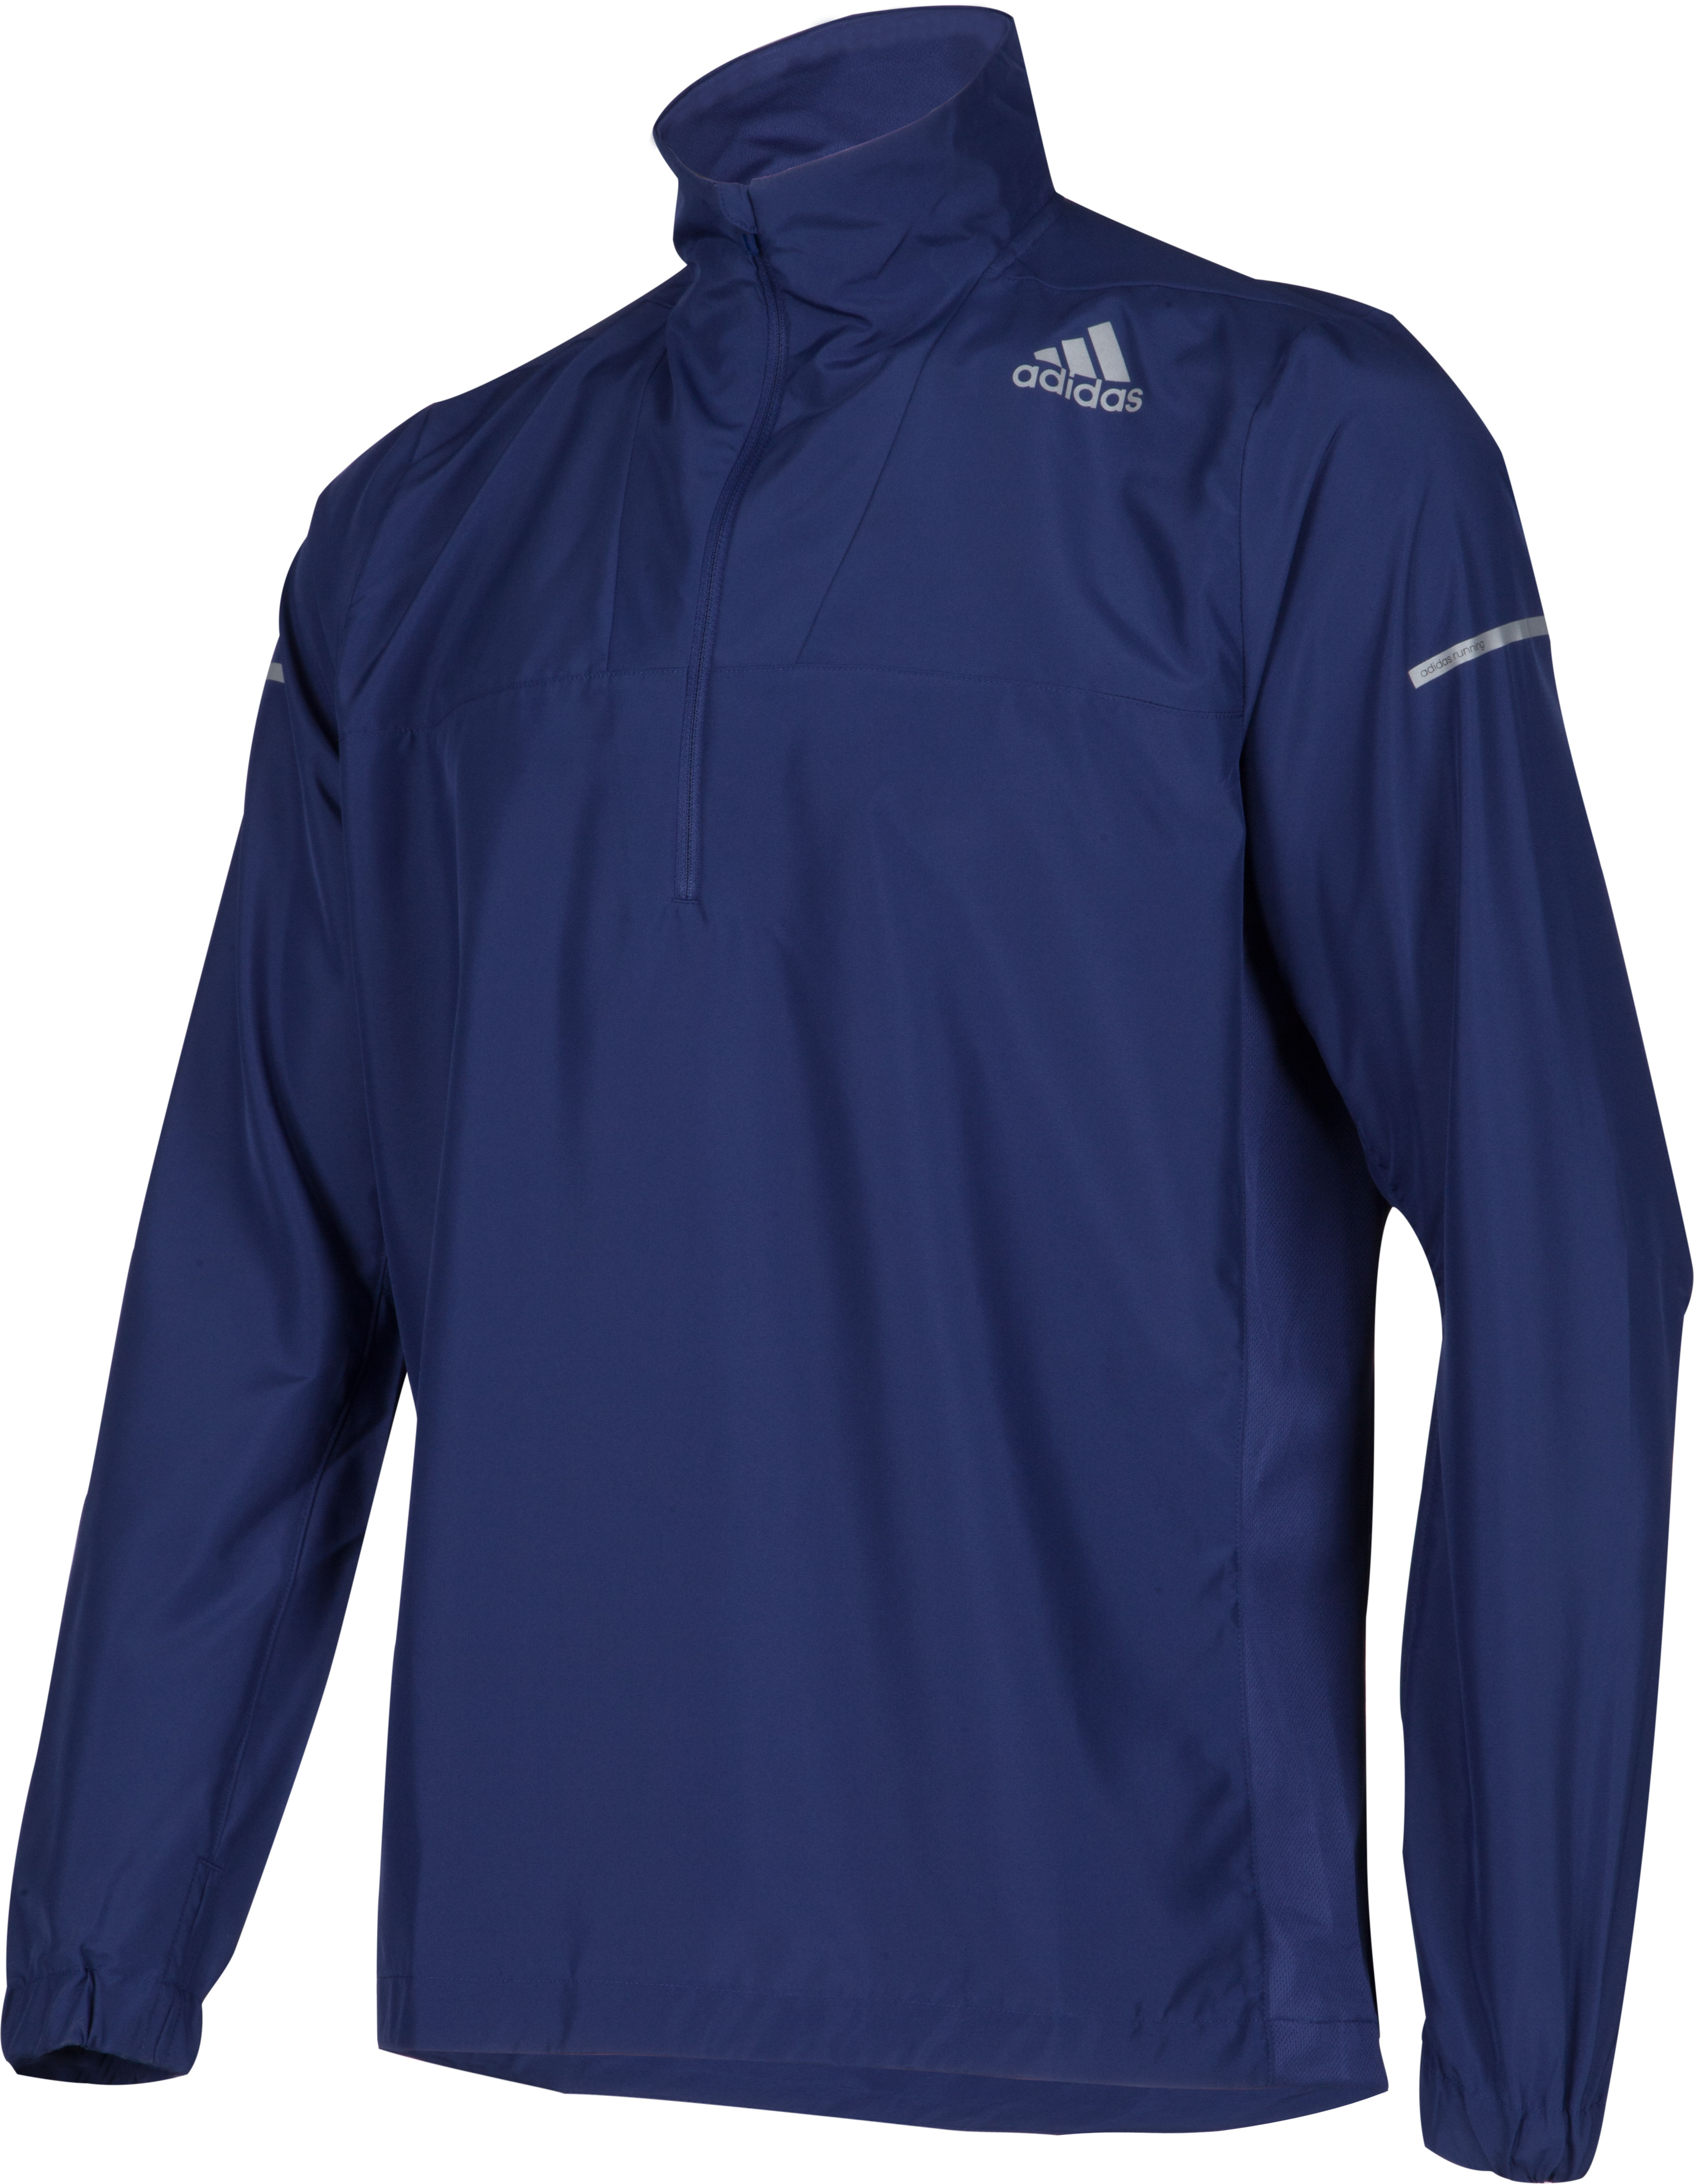 mens adidas jackets sale adidas store shop adidas for the latest styles. Black Bedroom Furniture Sets. Home Design Ideas